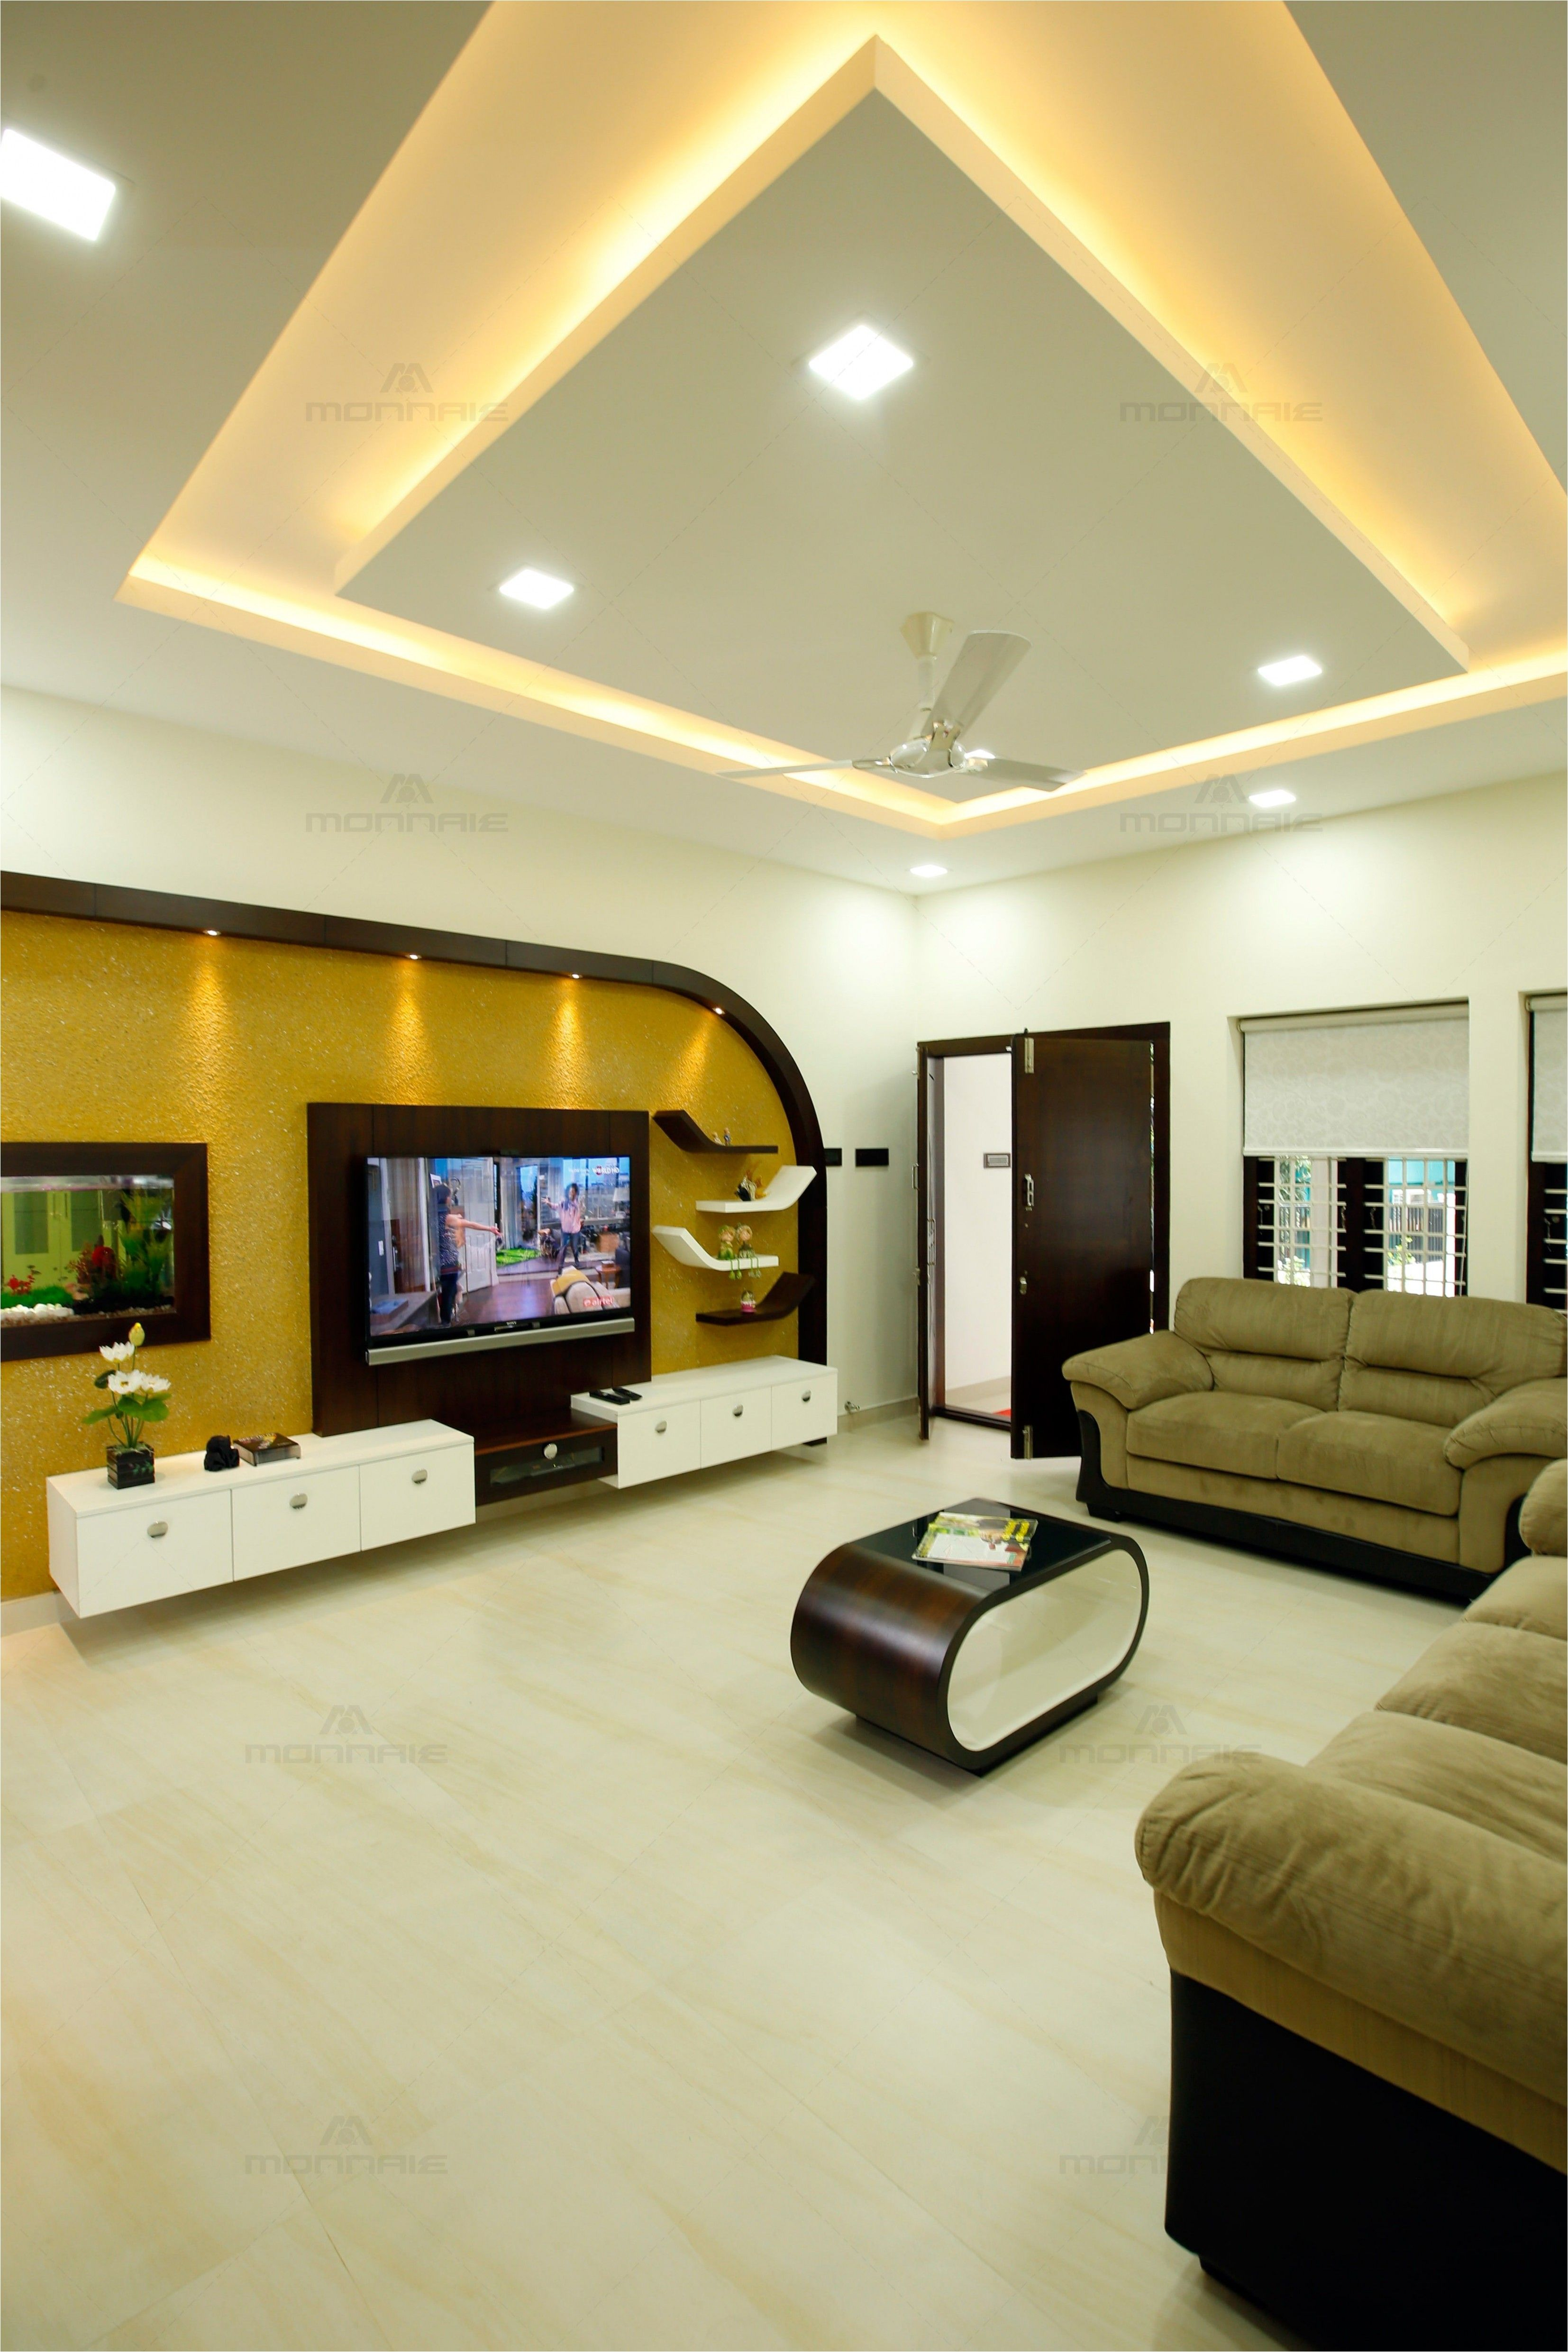 Kids Room False Ceiling Design: Lovely Living Room Design Without False Ceiling